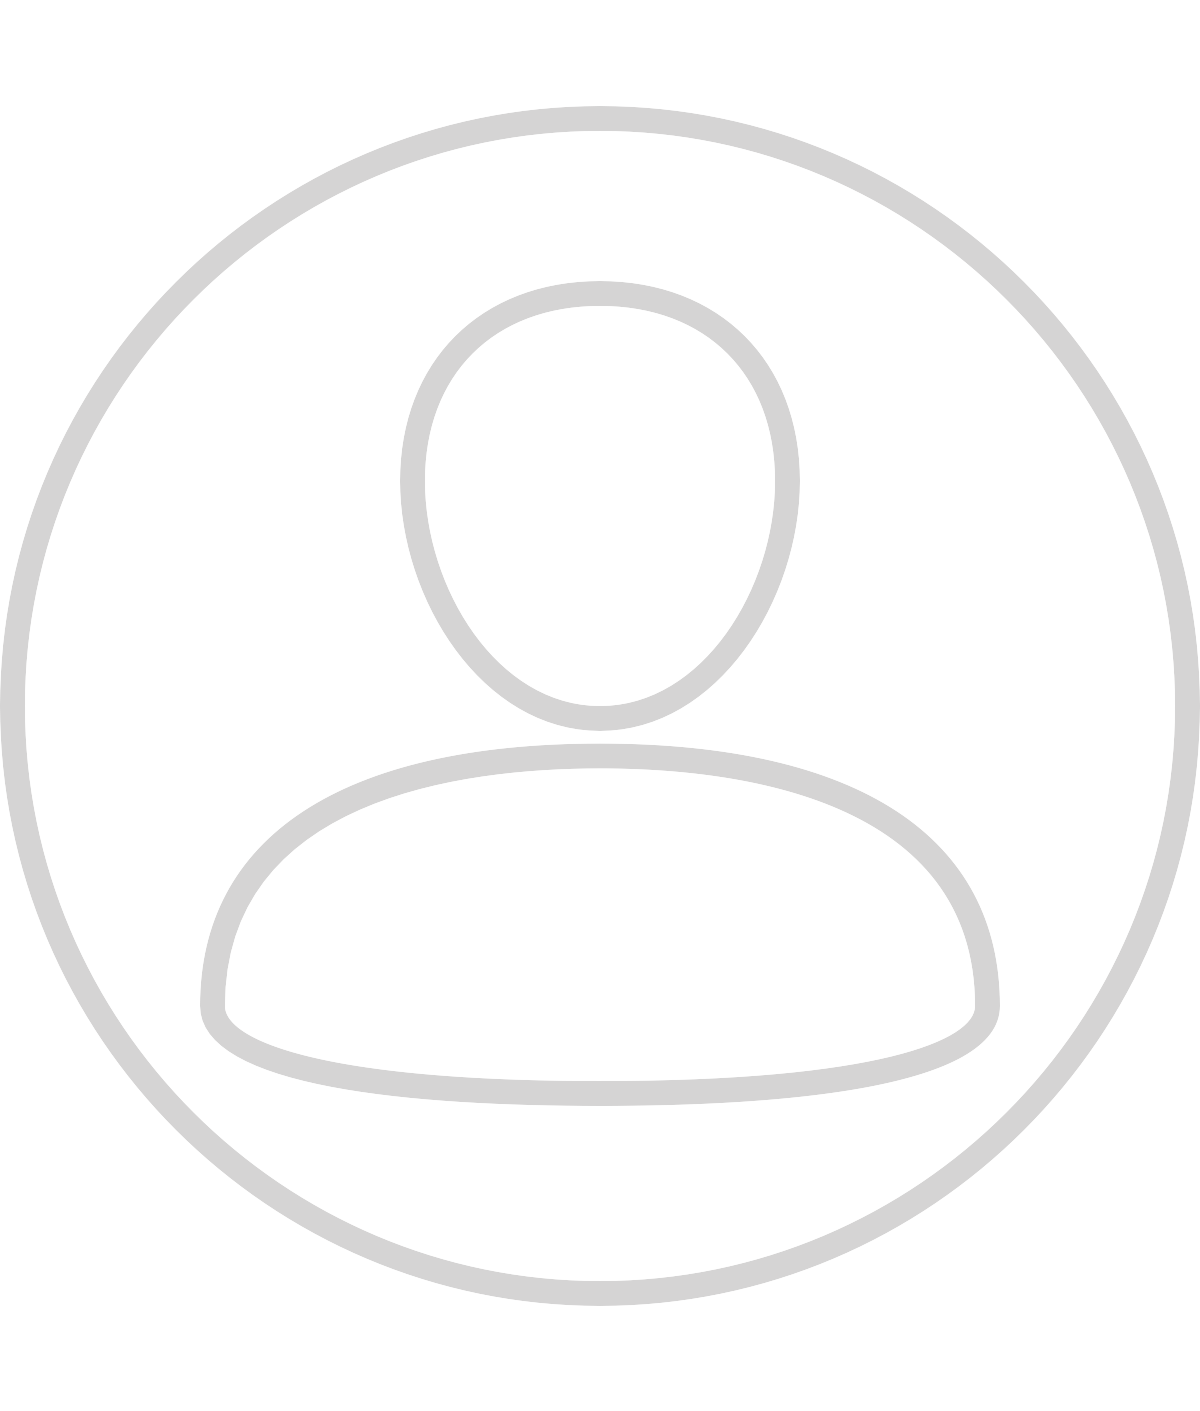 placeholder icon used in lieu of a photograph of James Smith